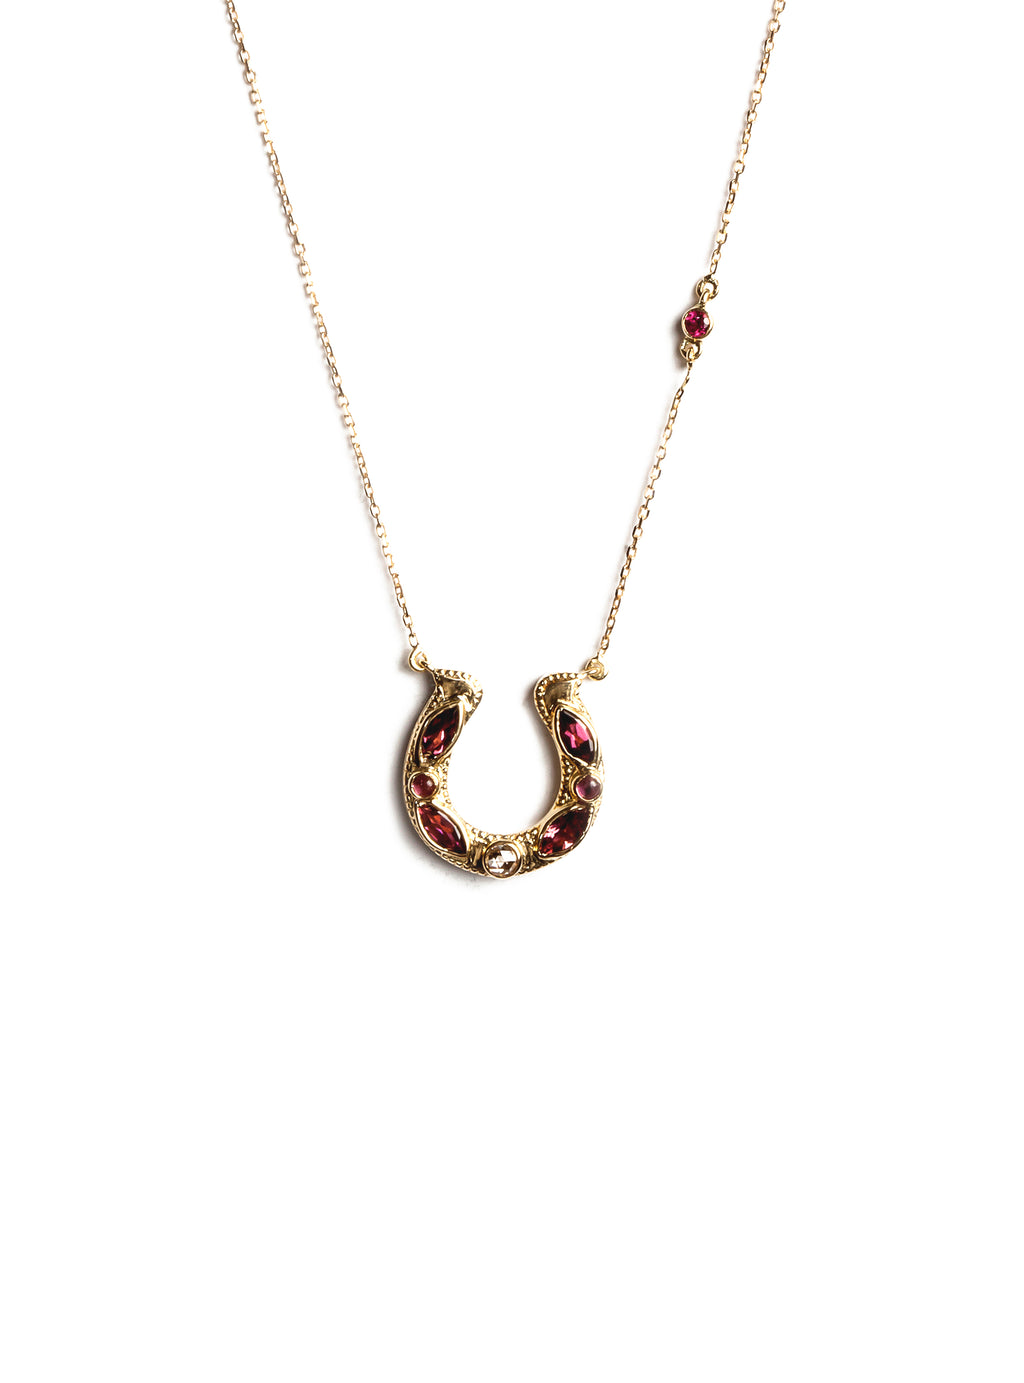 Horseshoe Necklace with Marquise Pink Tourmalines and Diamonds